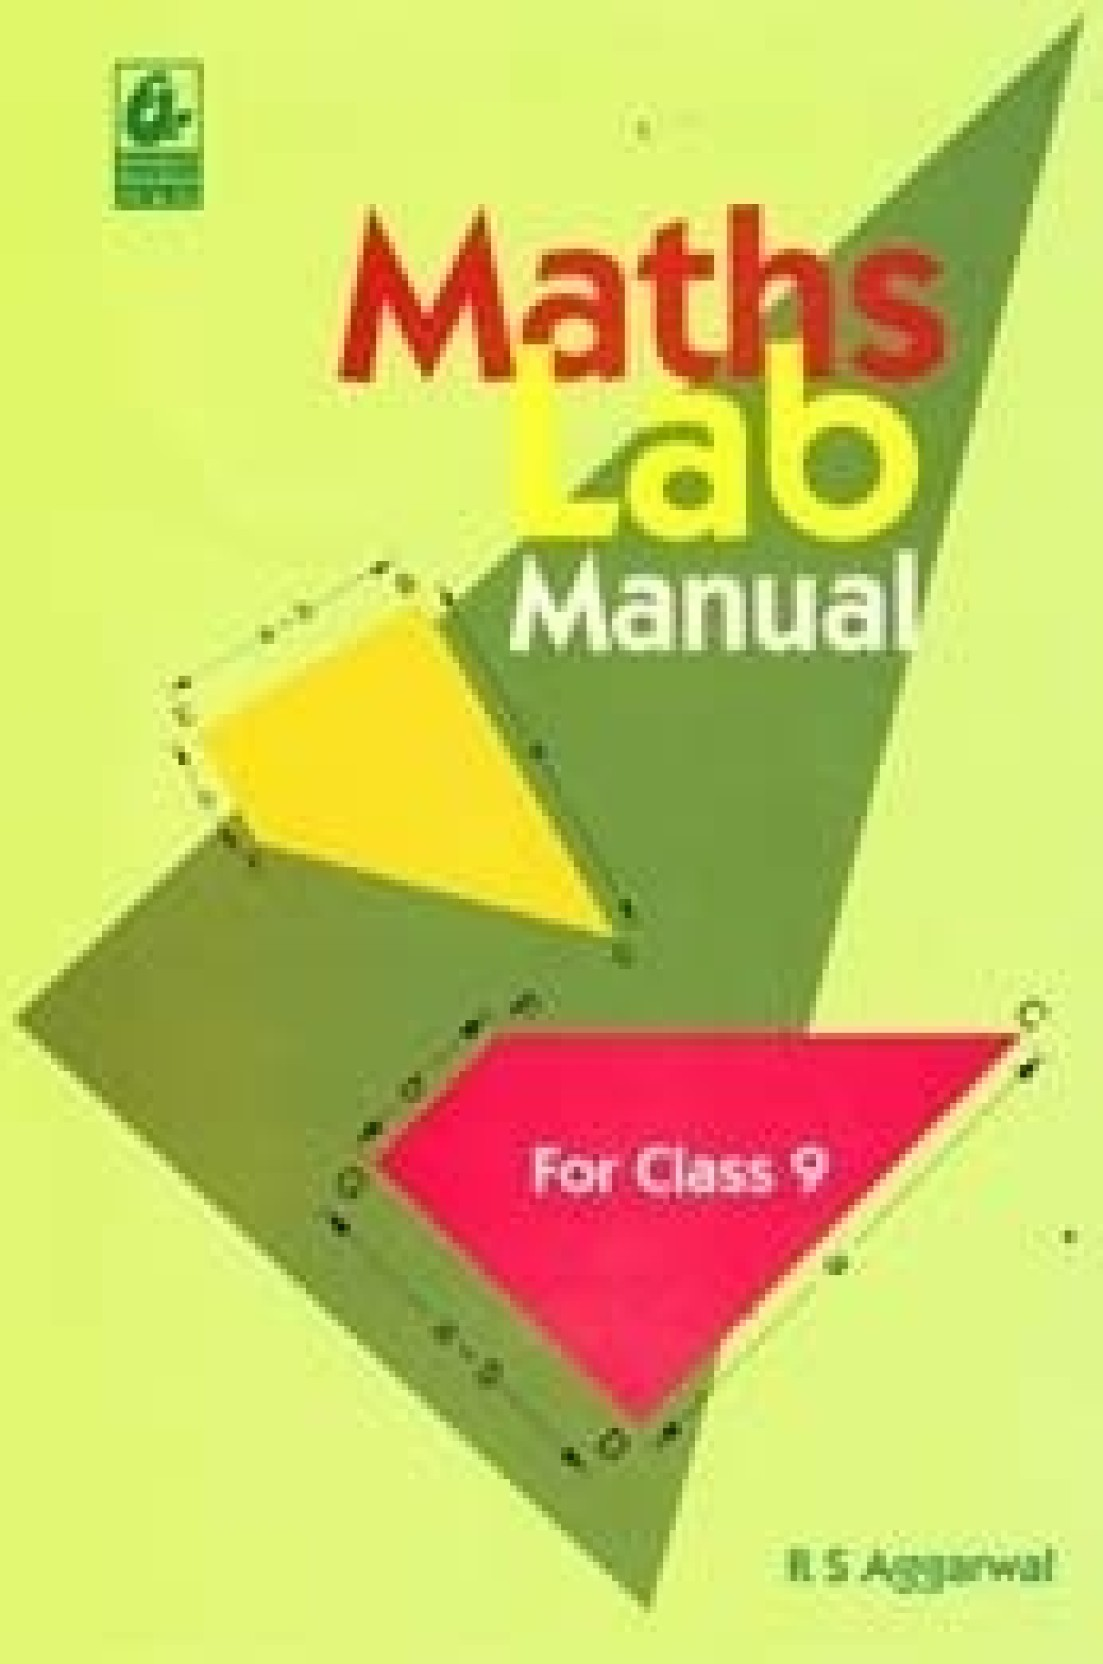 Maths Lab Manual For Class 9 / E1 01 Edition. ON OFFER